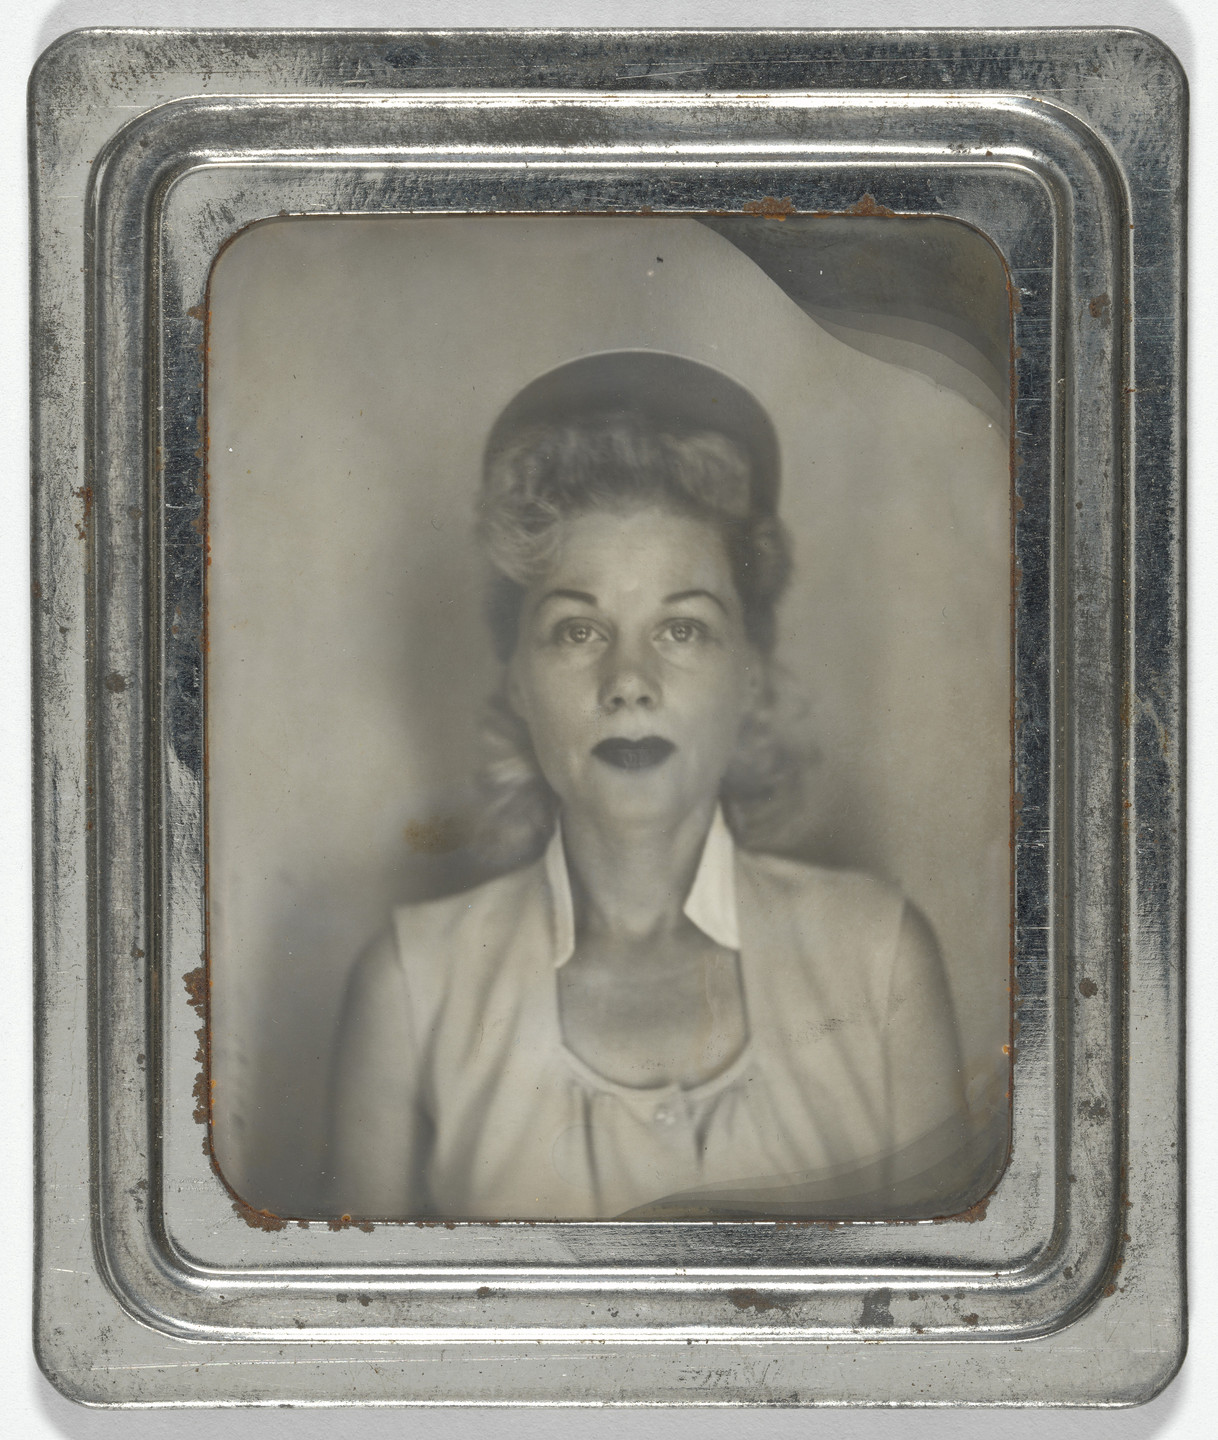 Unknown photographer. Photobooth self-portraits. 1940s